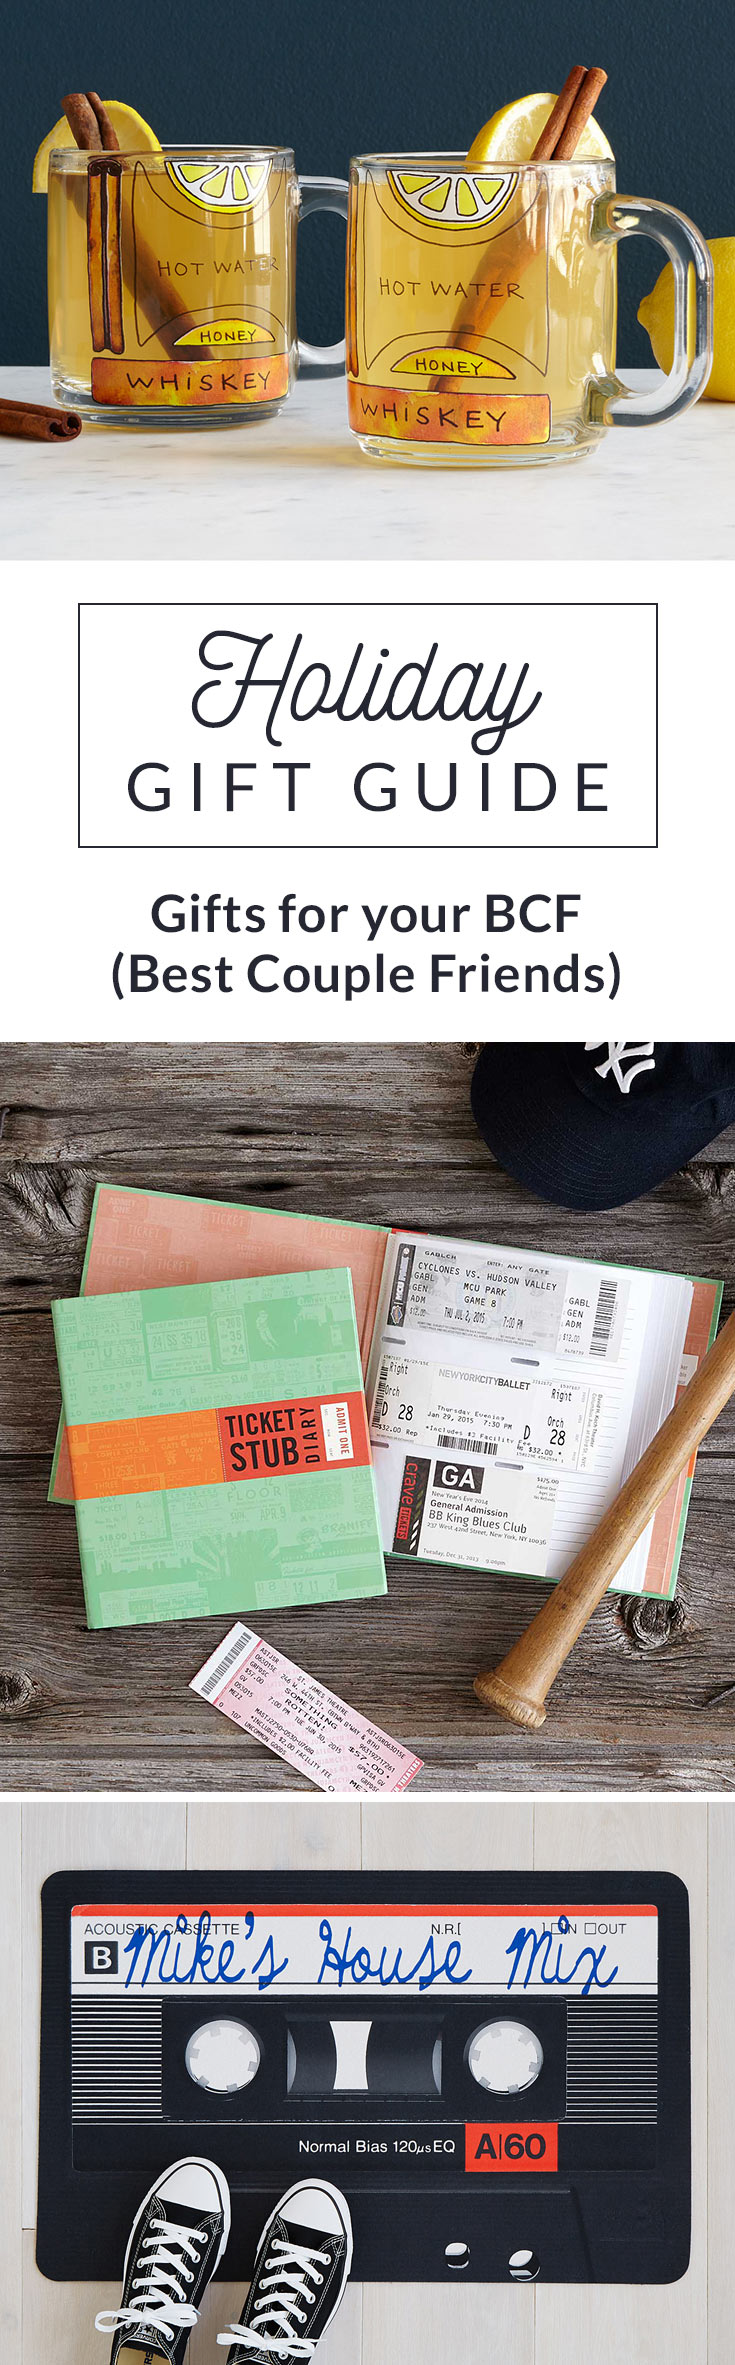 Gifts for your BCF (Best Couple Friends) - | Gifts | Pinterest ...